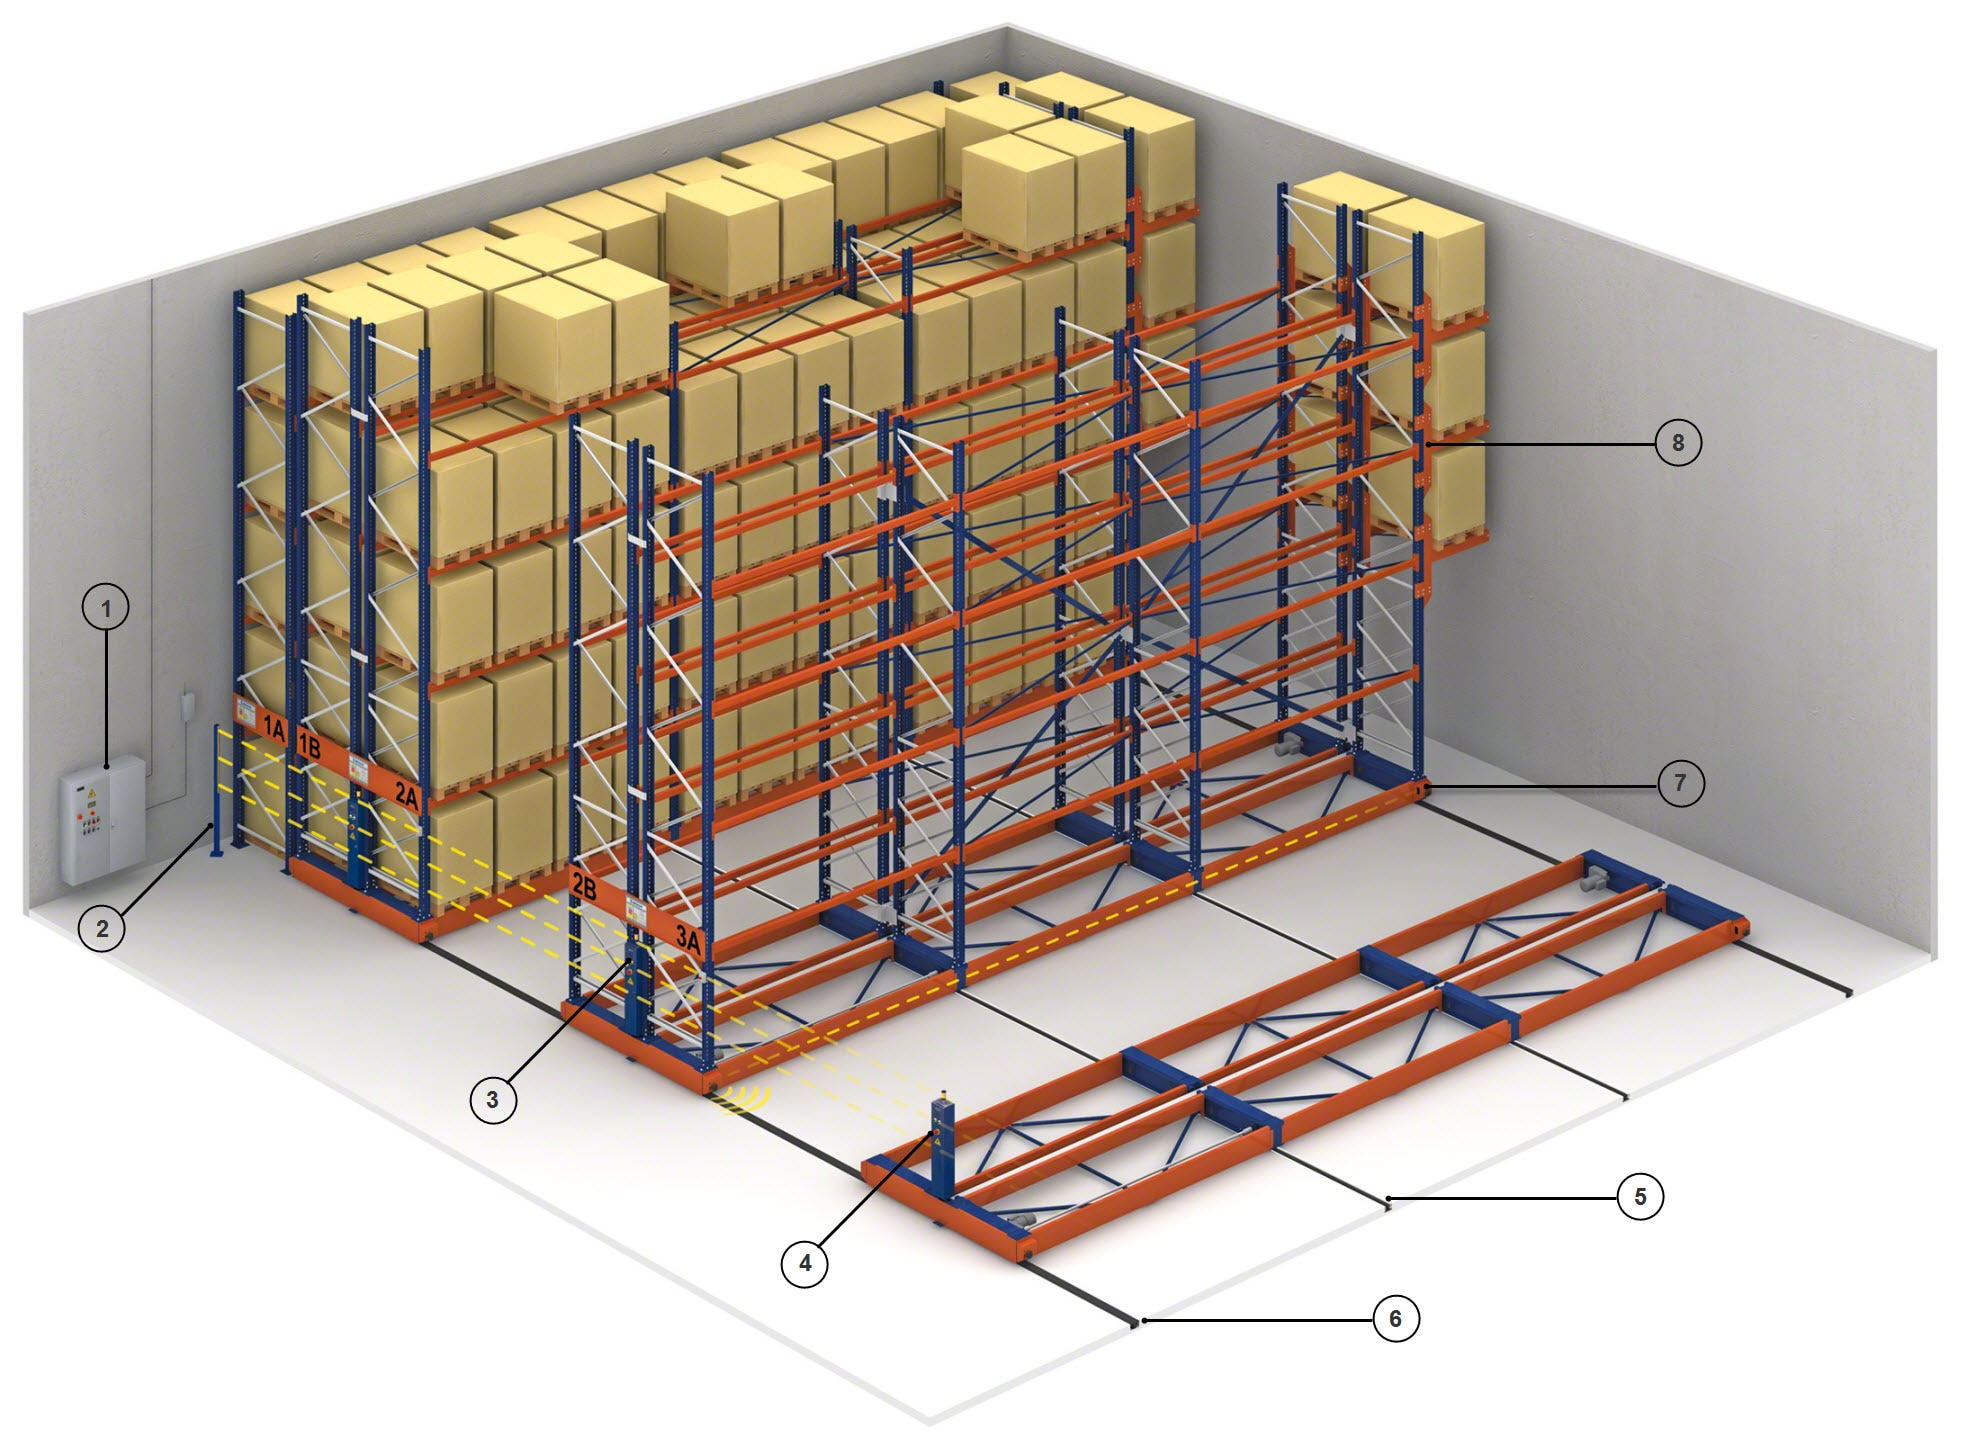 Basic components of Movirack mobile racking